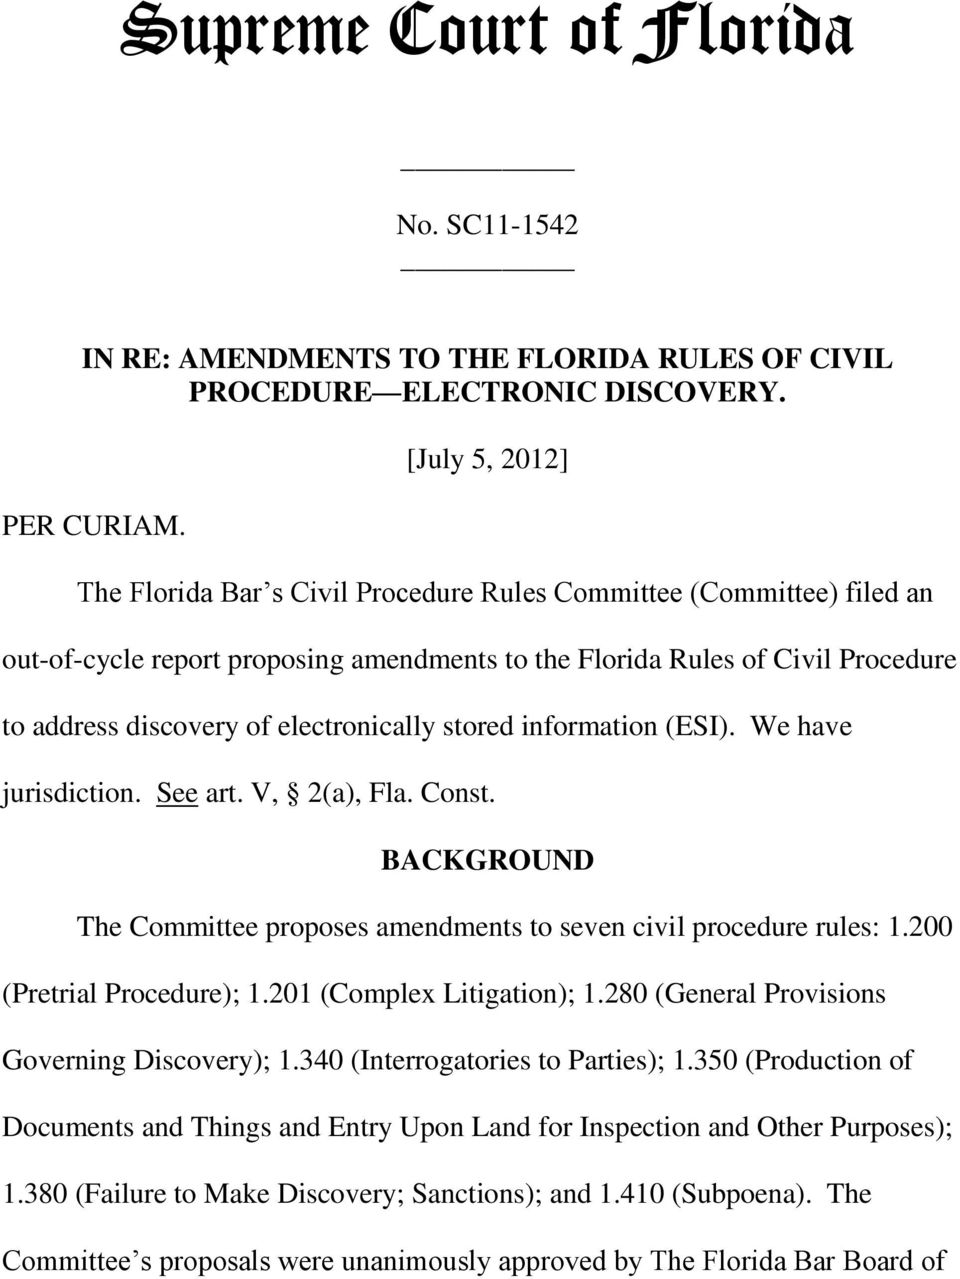 electronically stored information (ESI). We have jurisdiction. See art. V, 2(a), Fla. Const. BACKGROUND The Committee proposes amendments to seven civil procedure rules: 1.200 (Pretrial Procedure); 1.